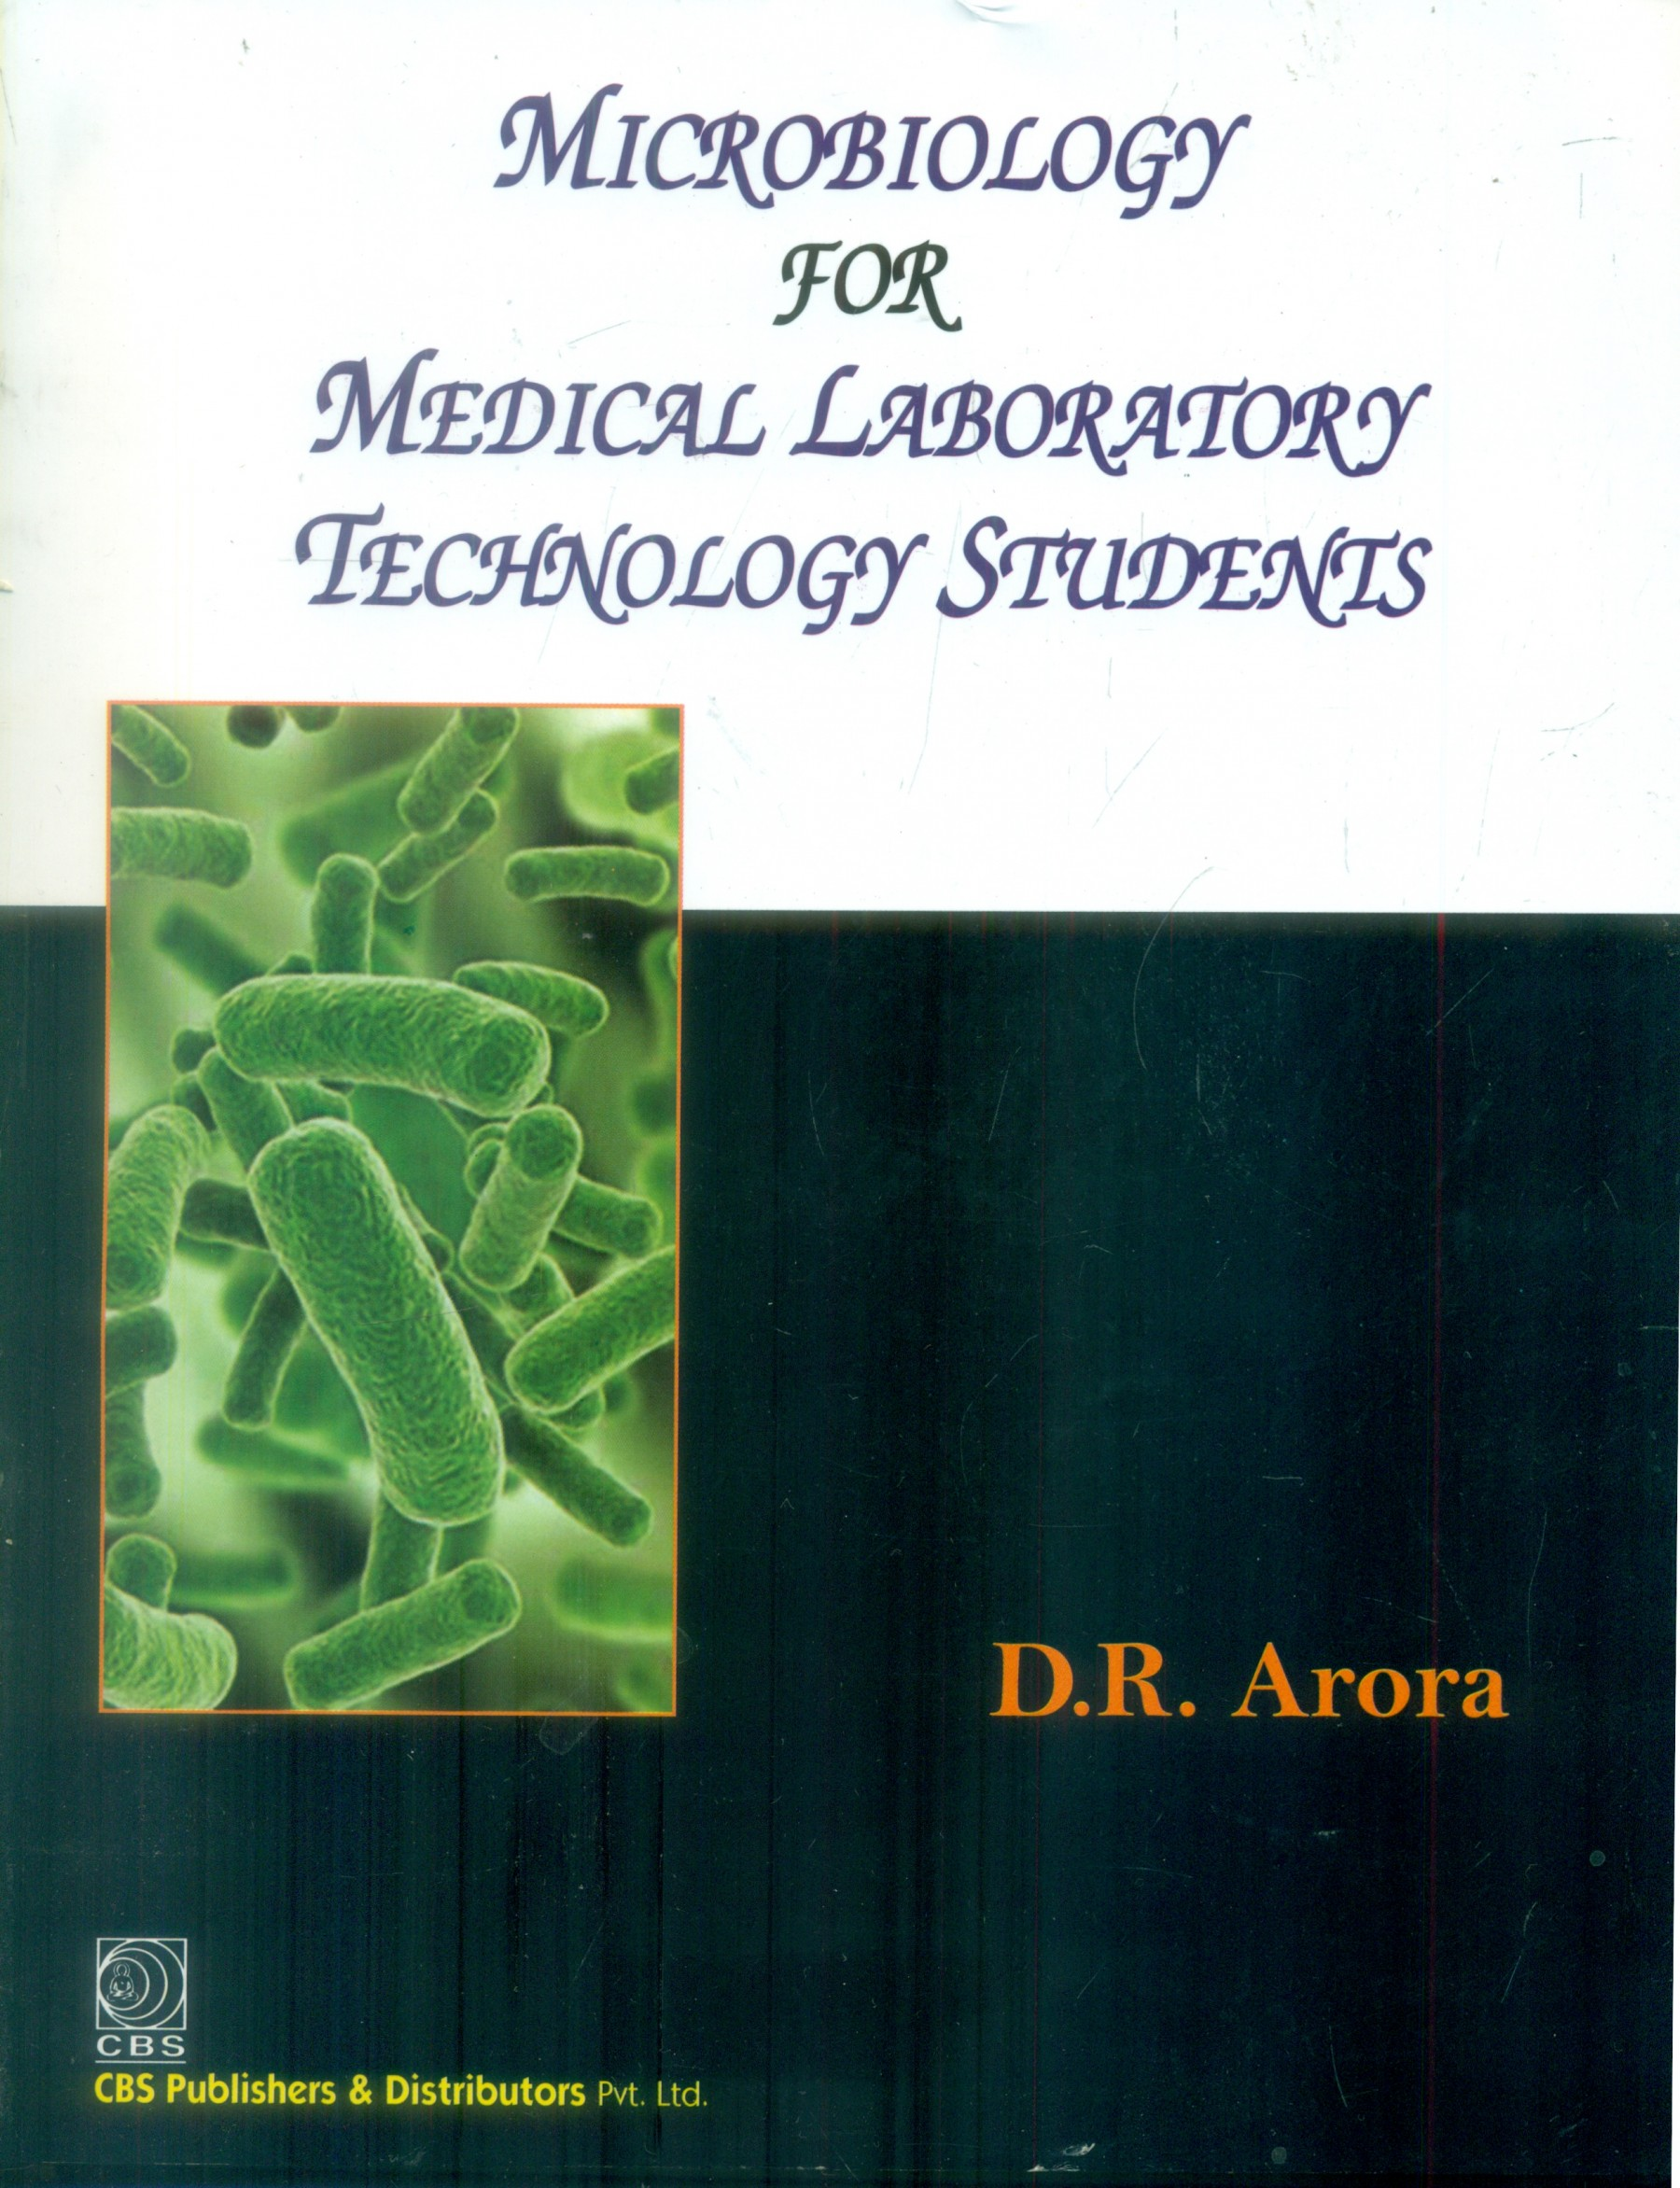 MICROBIOLOGY FOR MEDICAL LABORATORY TECHNOLOGY STUDENTS (PB 2018)